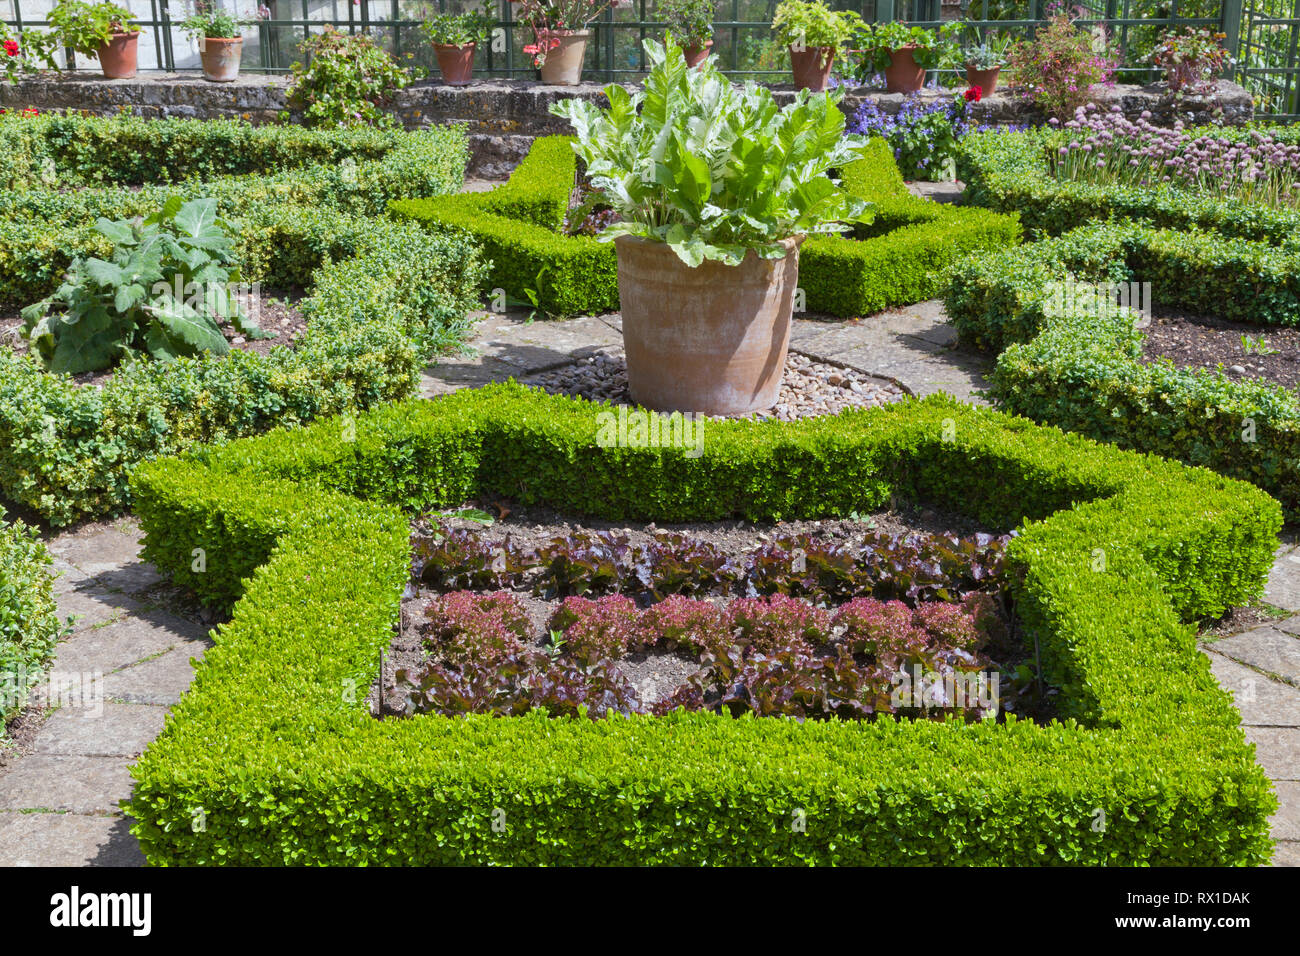 Growing vegetables and herbs in shaped trimmed hedge plots, summer english garden . - Stock Image